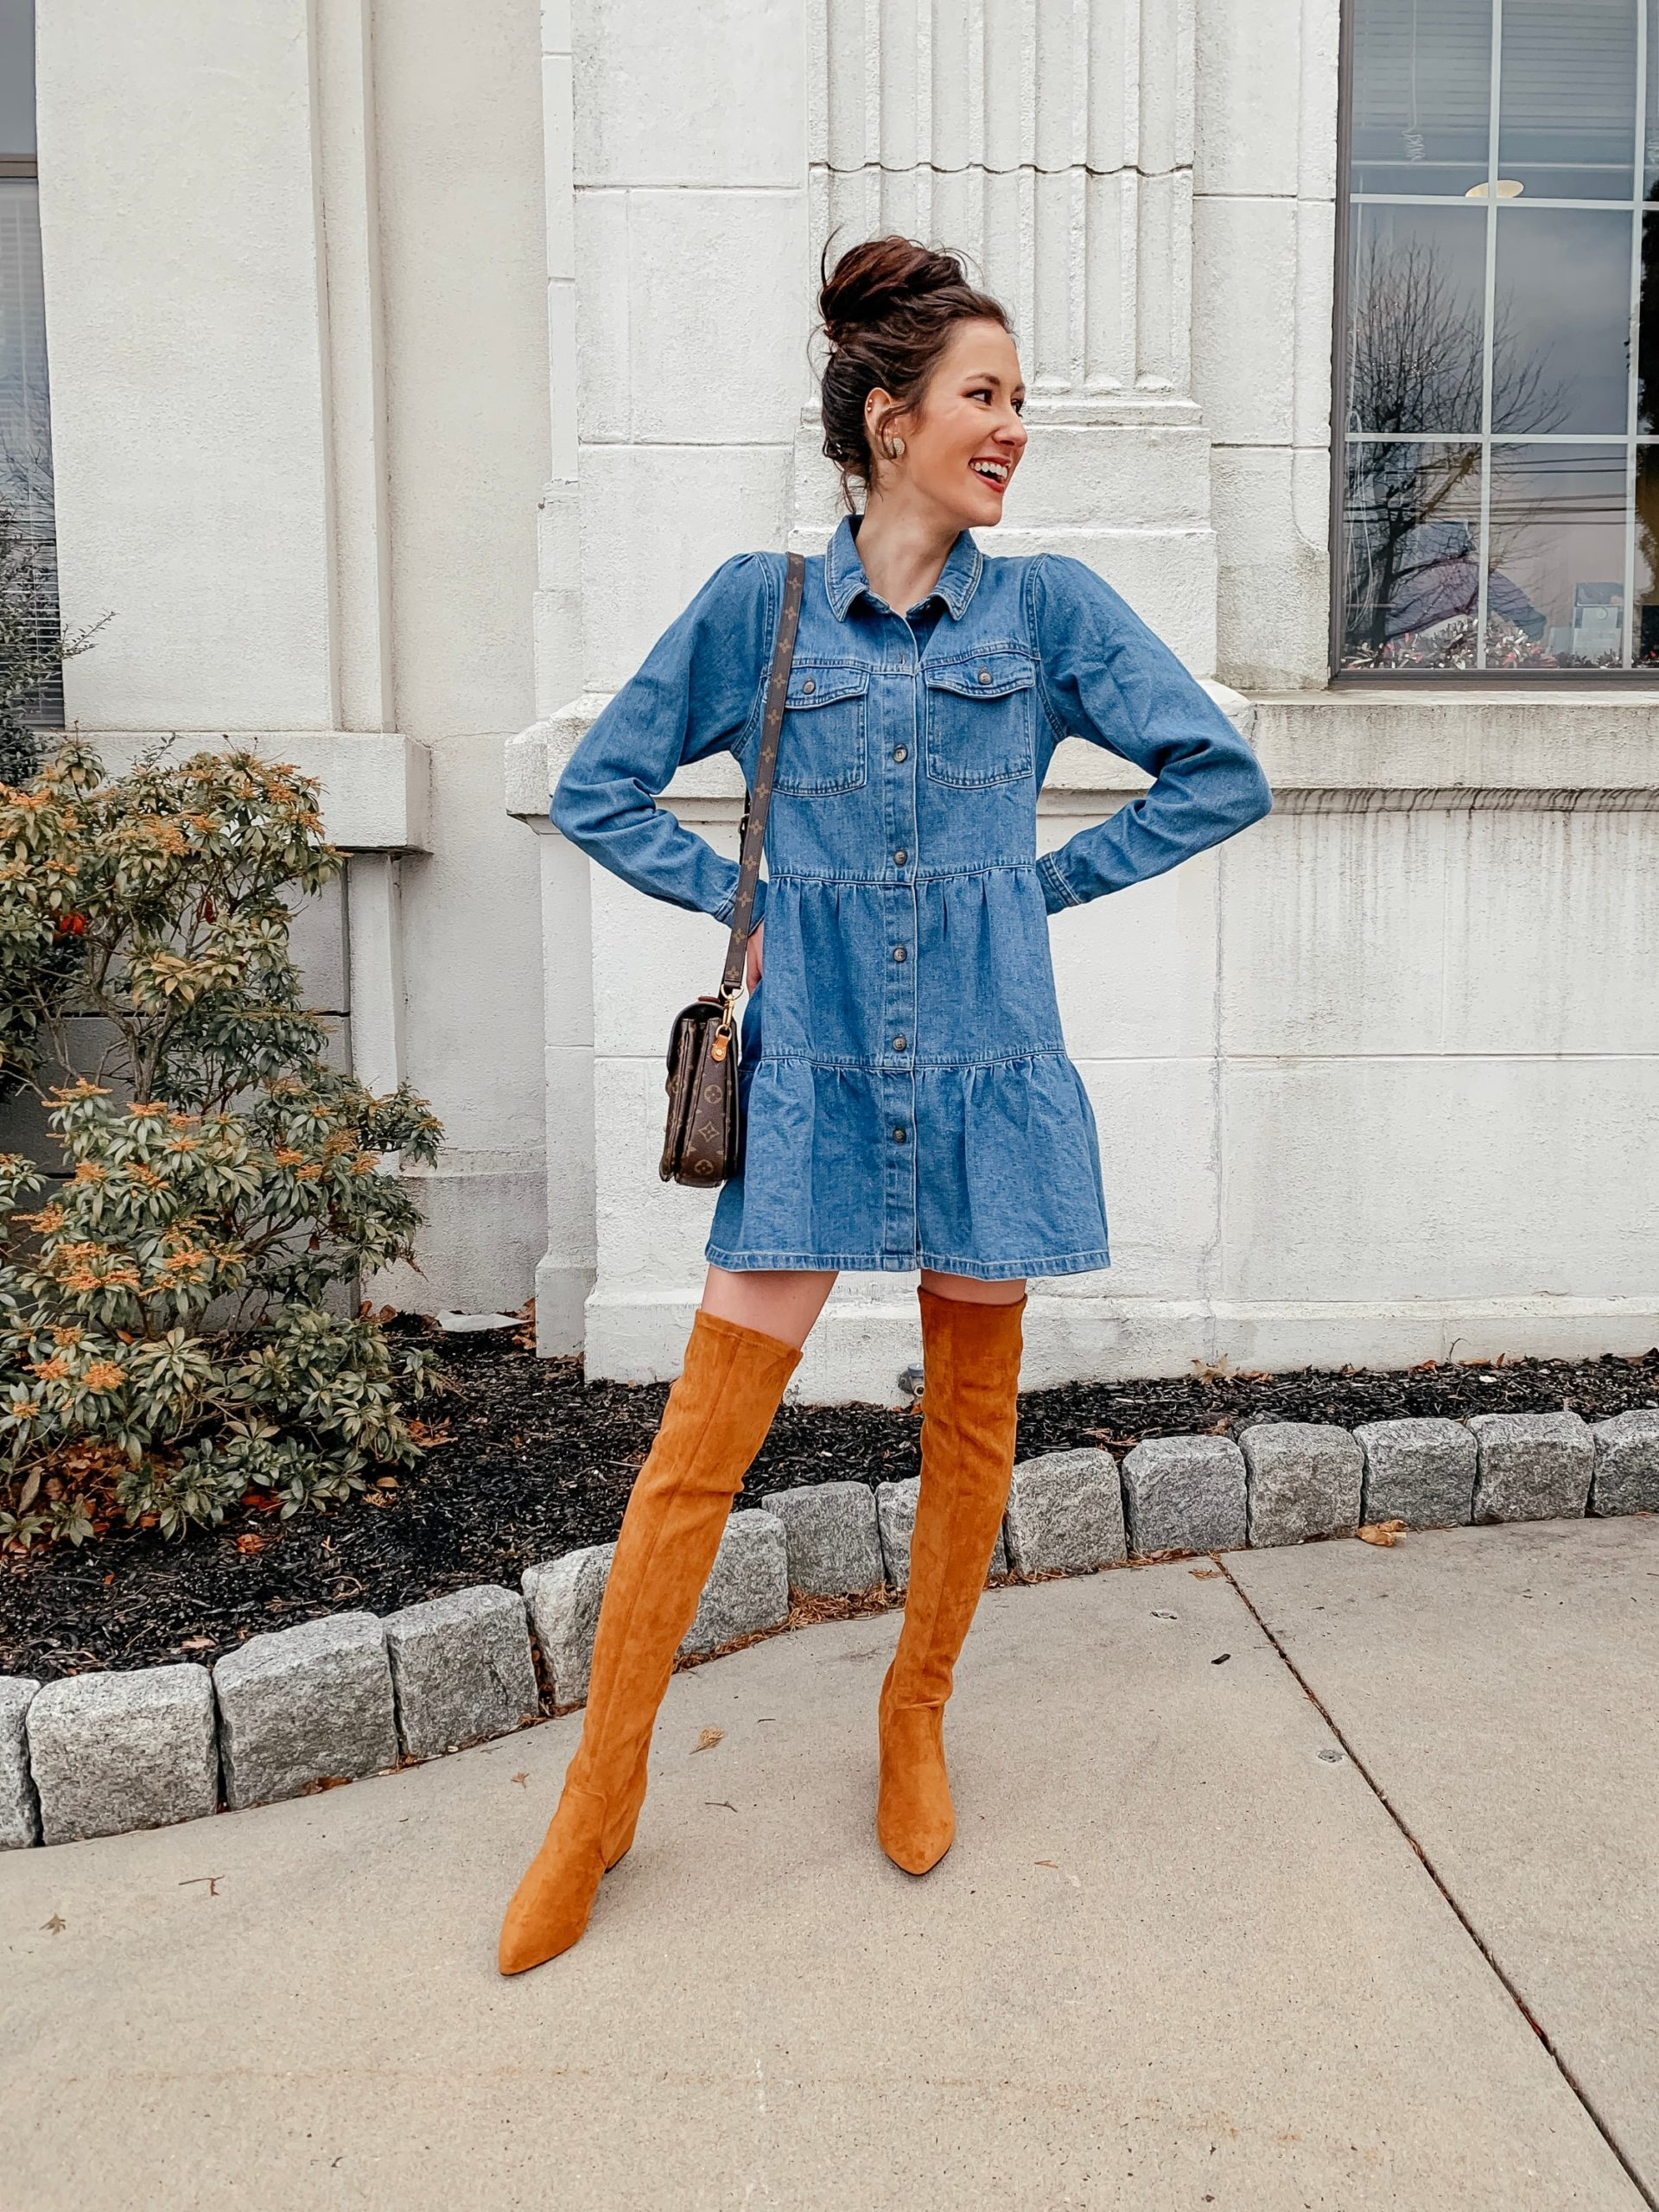 DUPED: Goodnight Macaroon Over-the-Knee boots and their best DUPES from Amazon - for $100 less! On Coming Up Roses